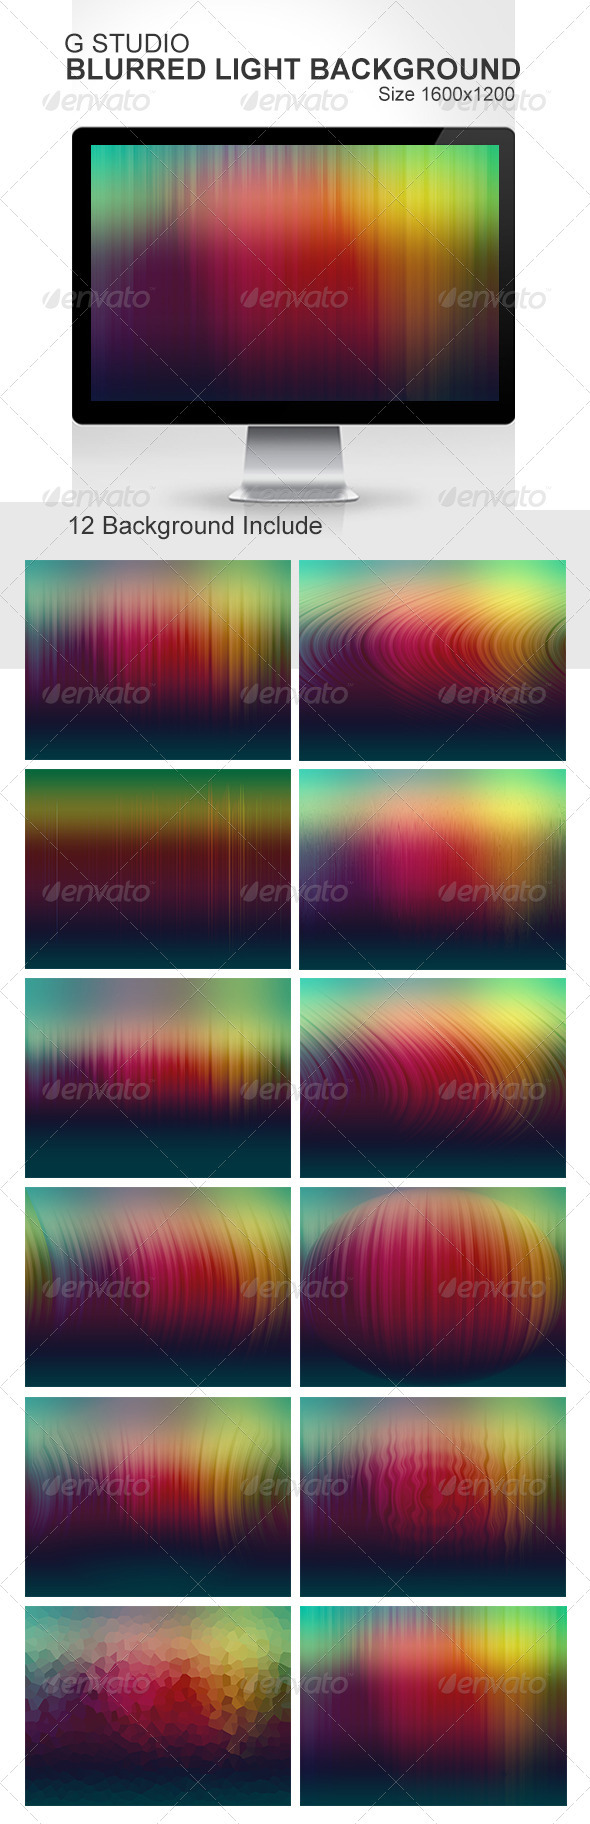 Gstudio Blurred Light Background - Abstract Backgrounds